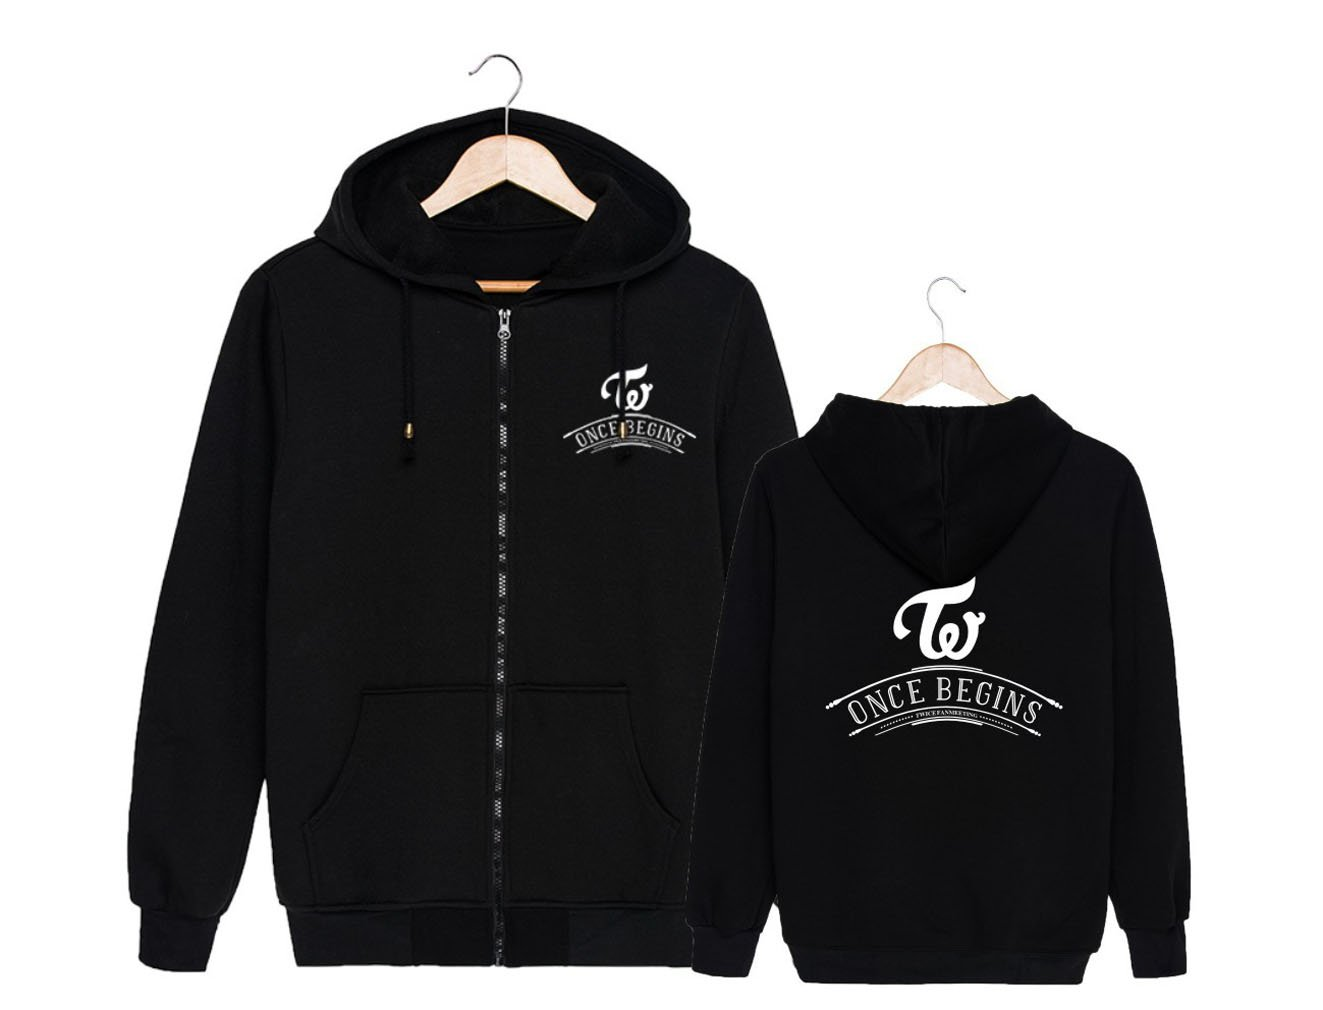 ALLDECOR Twice FM Once Begins Concert Long Sleeve Hoodie Coat Cotton Pullover